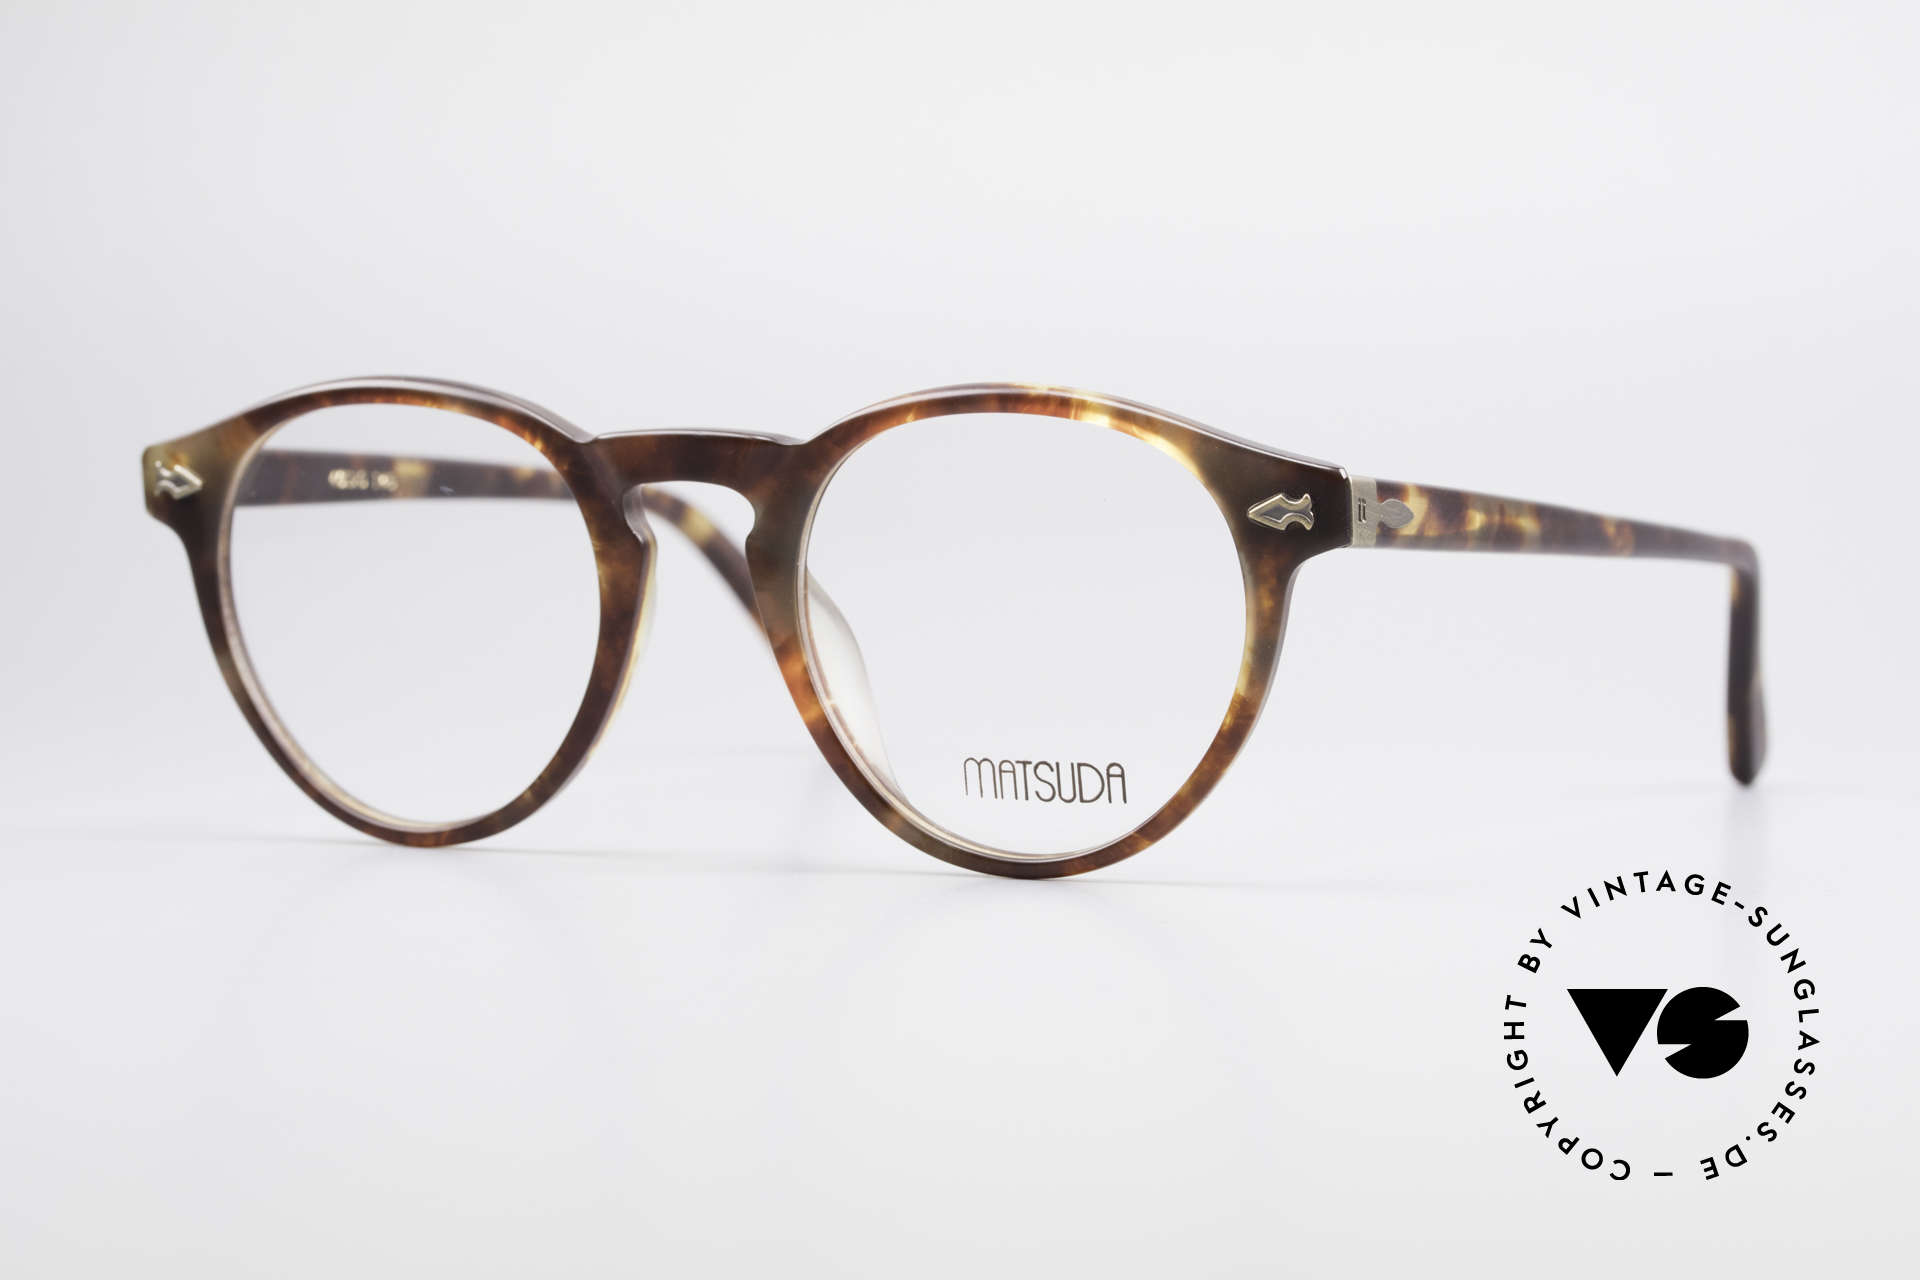 Matsuda 2303 Panto Vintage Eyeglasses, vintage Matsuda designer eyeglasses from the mid 90's, Made for Men and Women